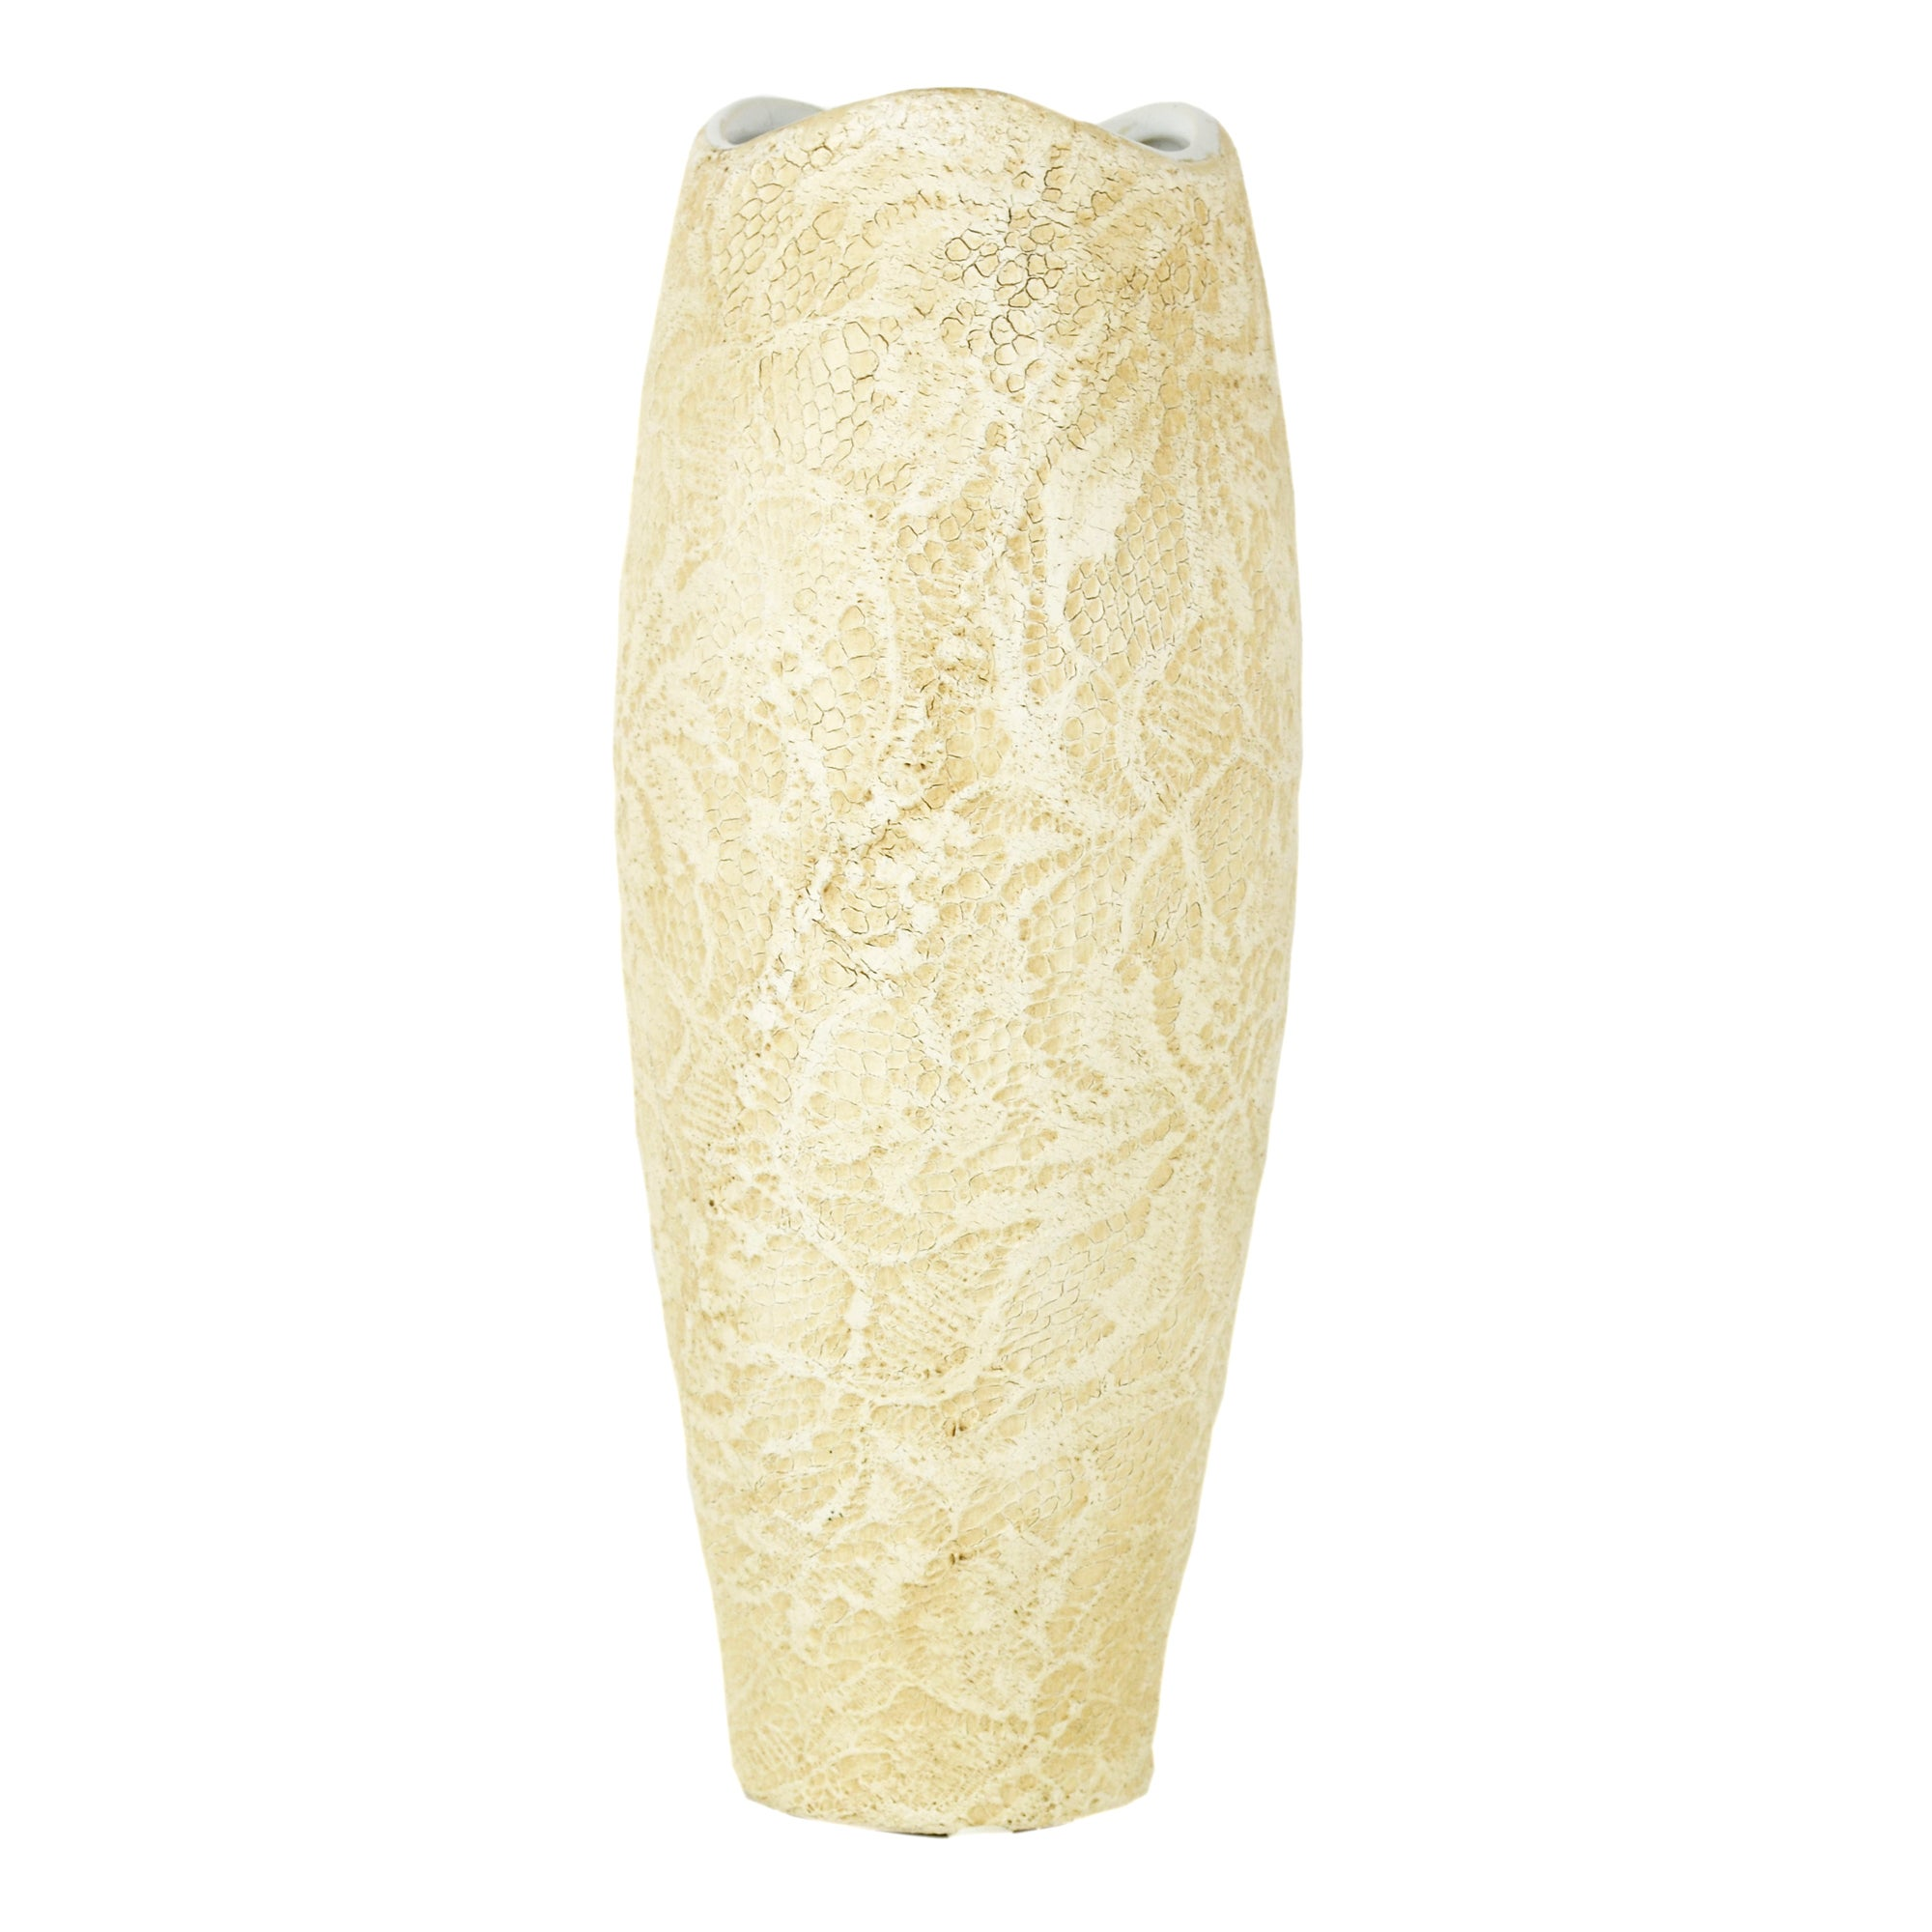 New Naturals Collection Lace Design Bullet Vase